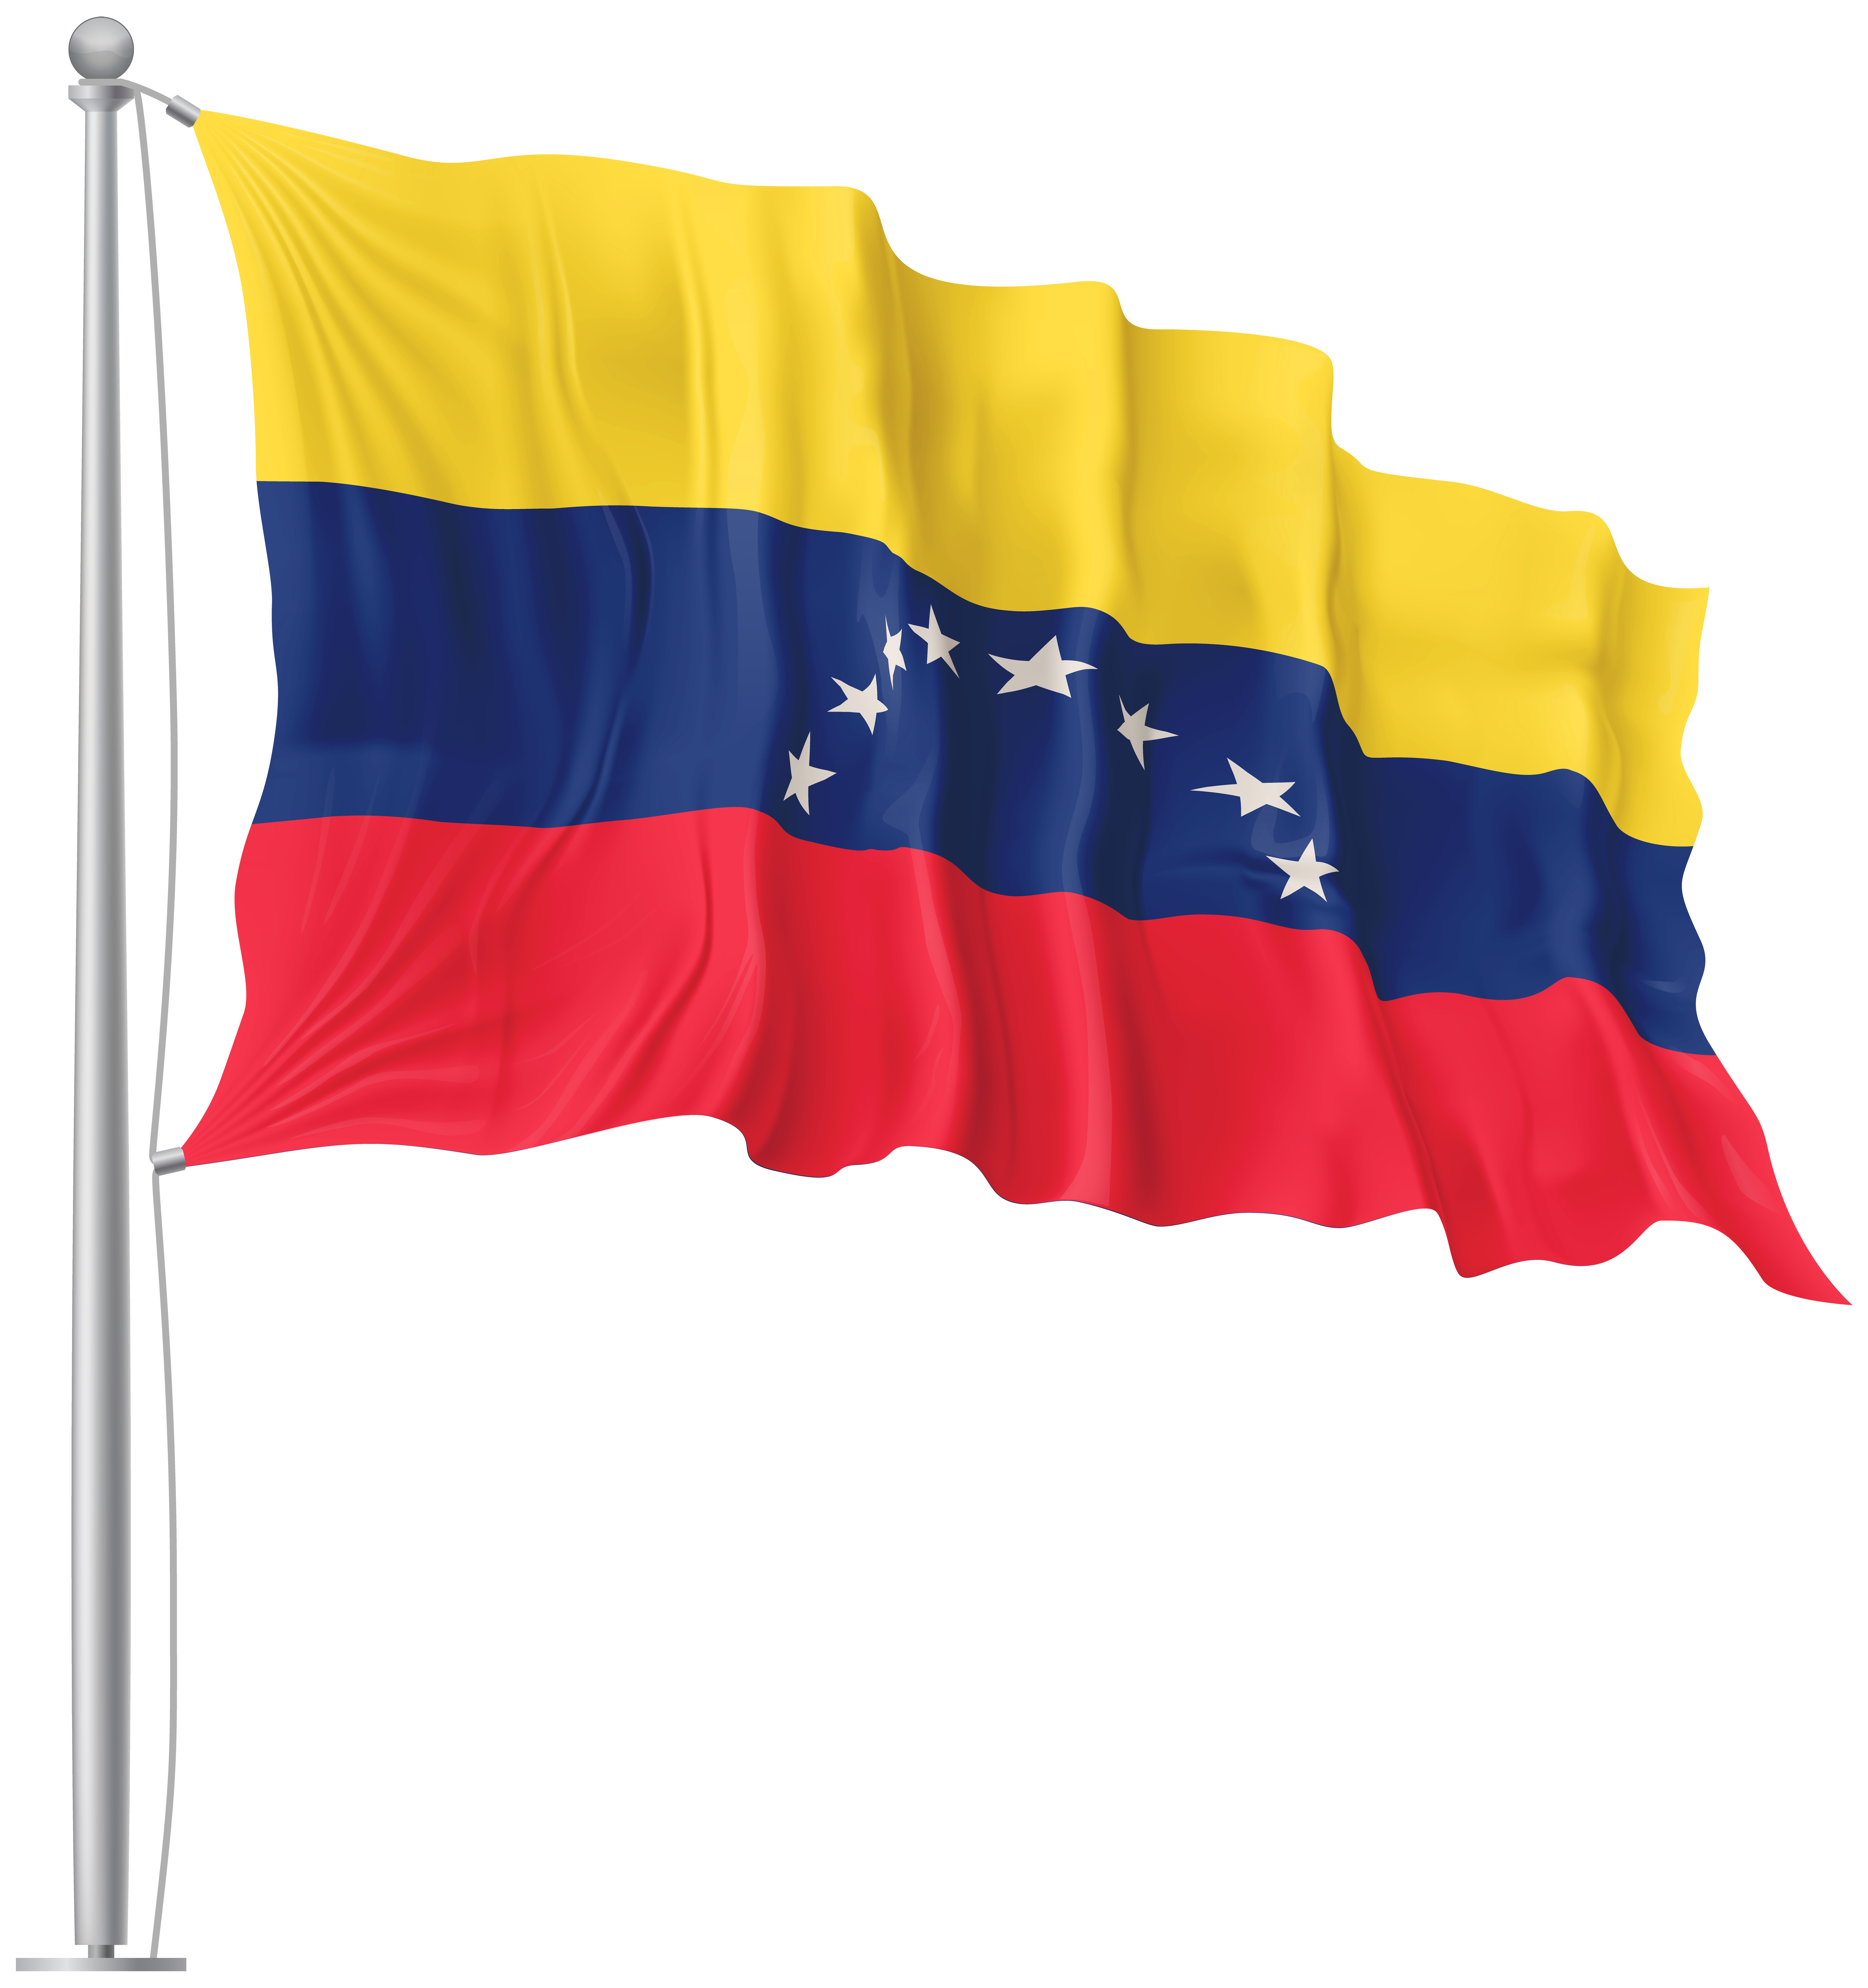 Venezuela flag png. Waving image gallery yopriceville